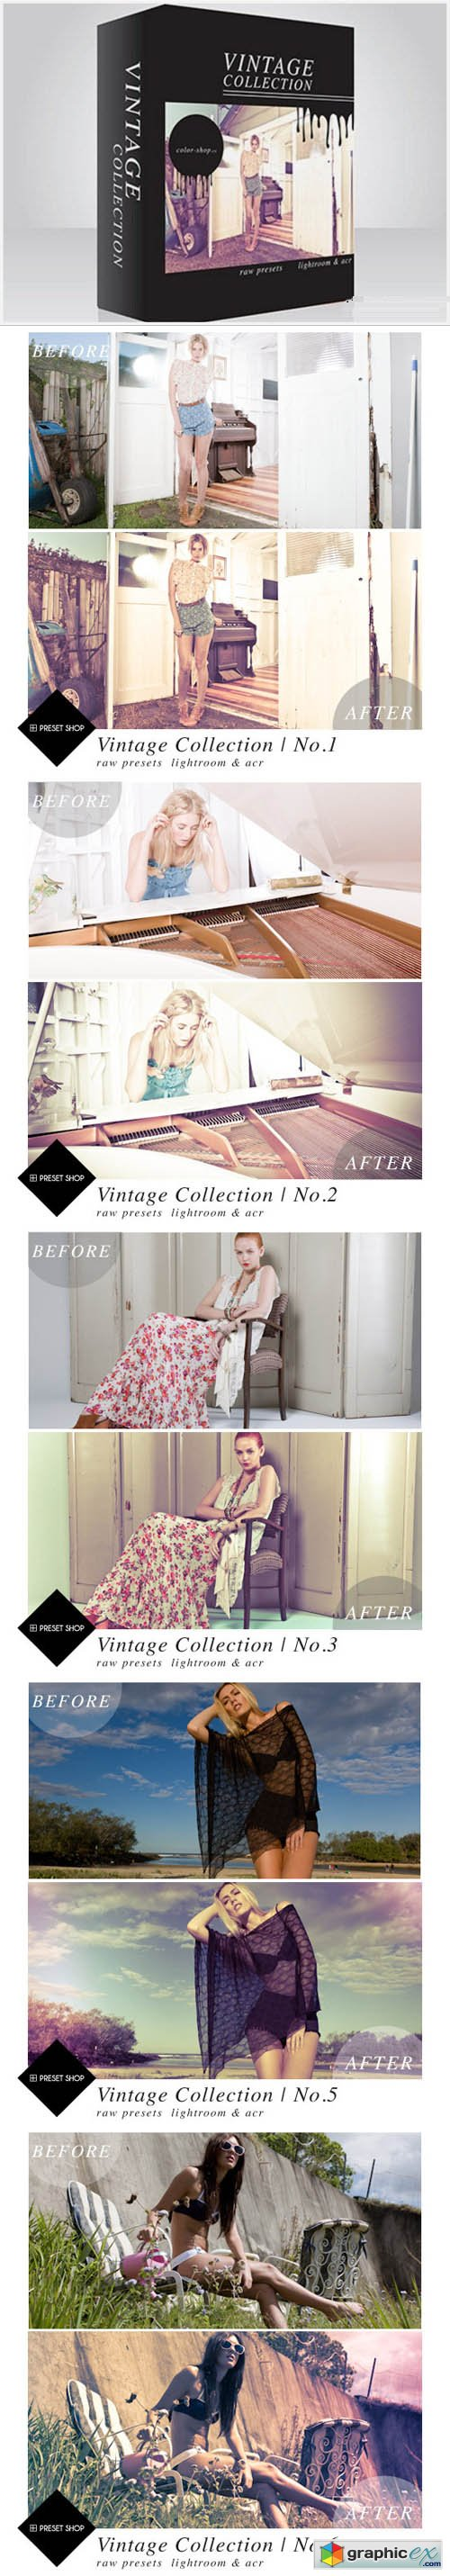 Presetshop - Vintage Lightroom Presets Collection